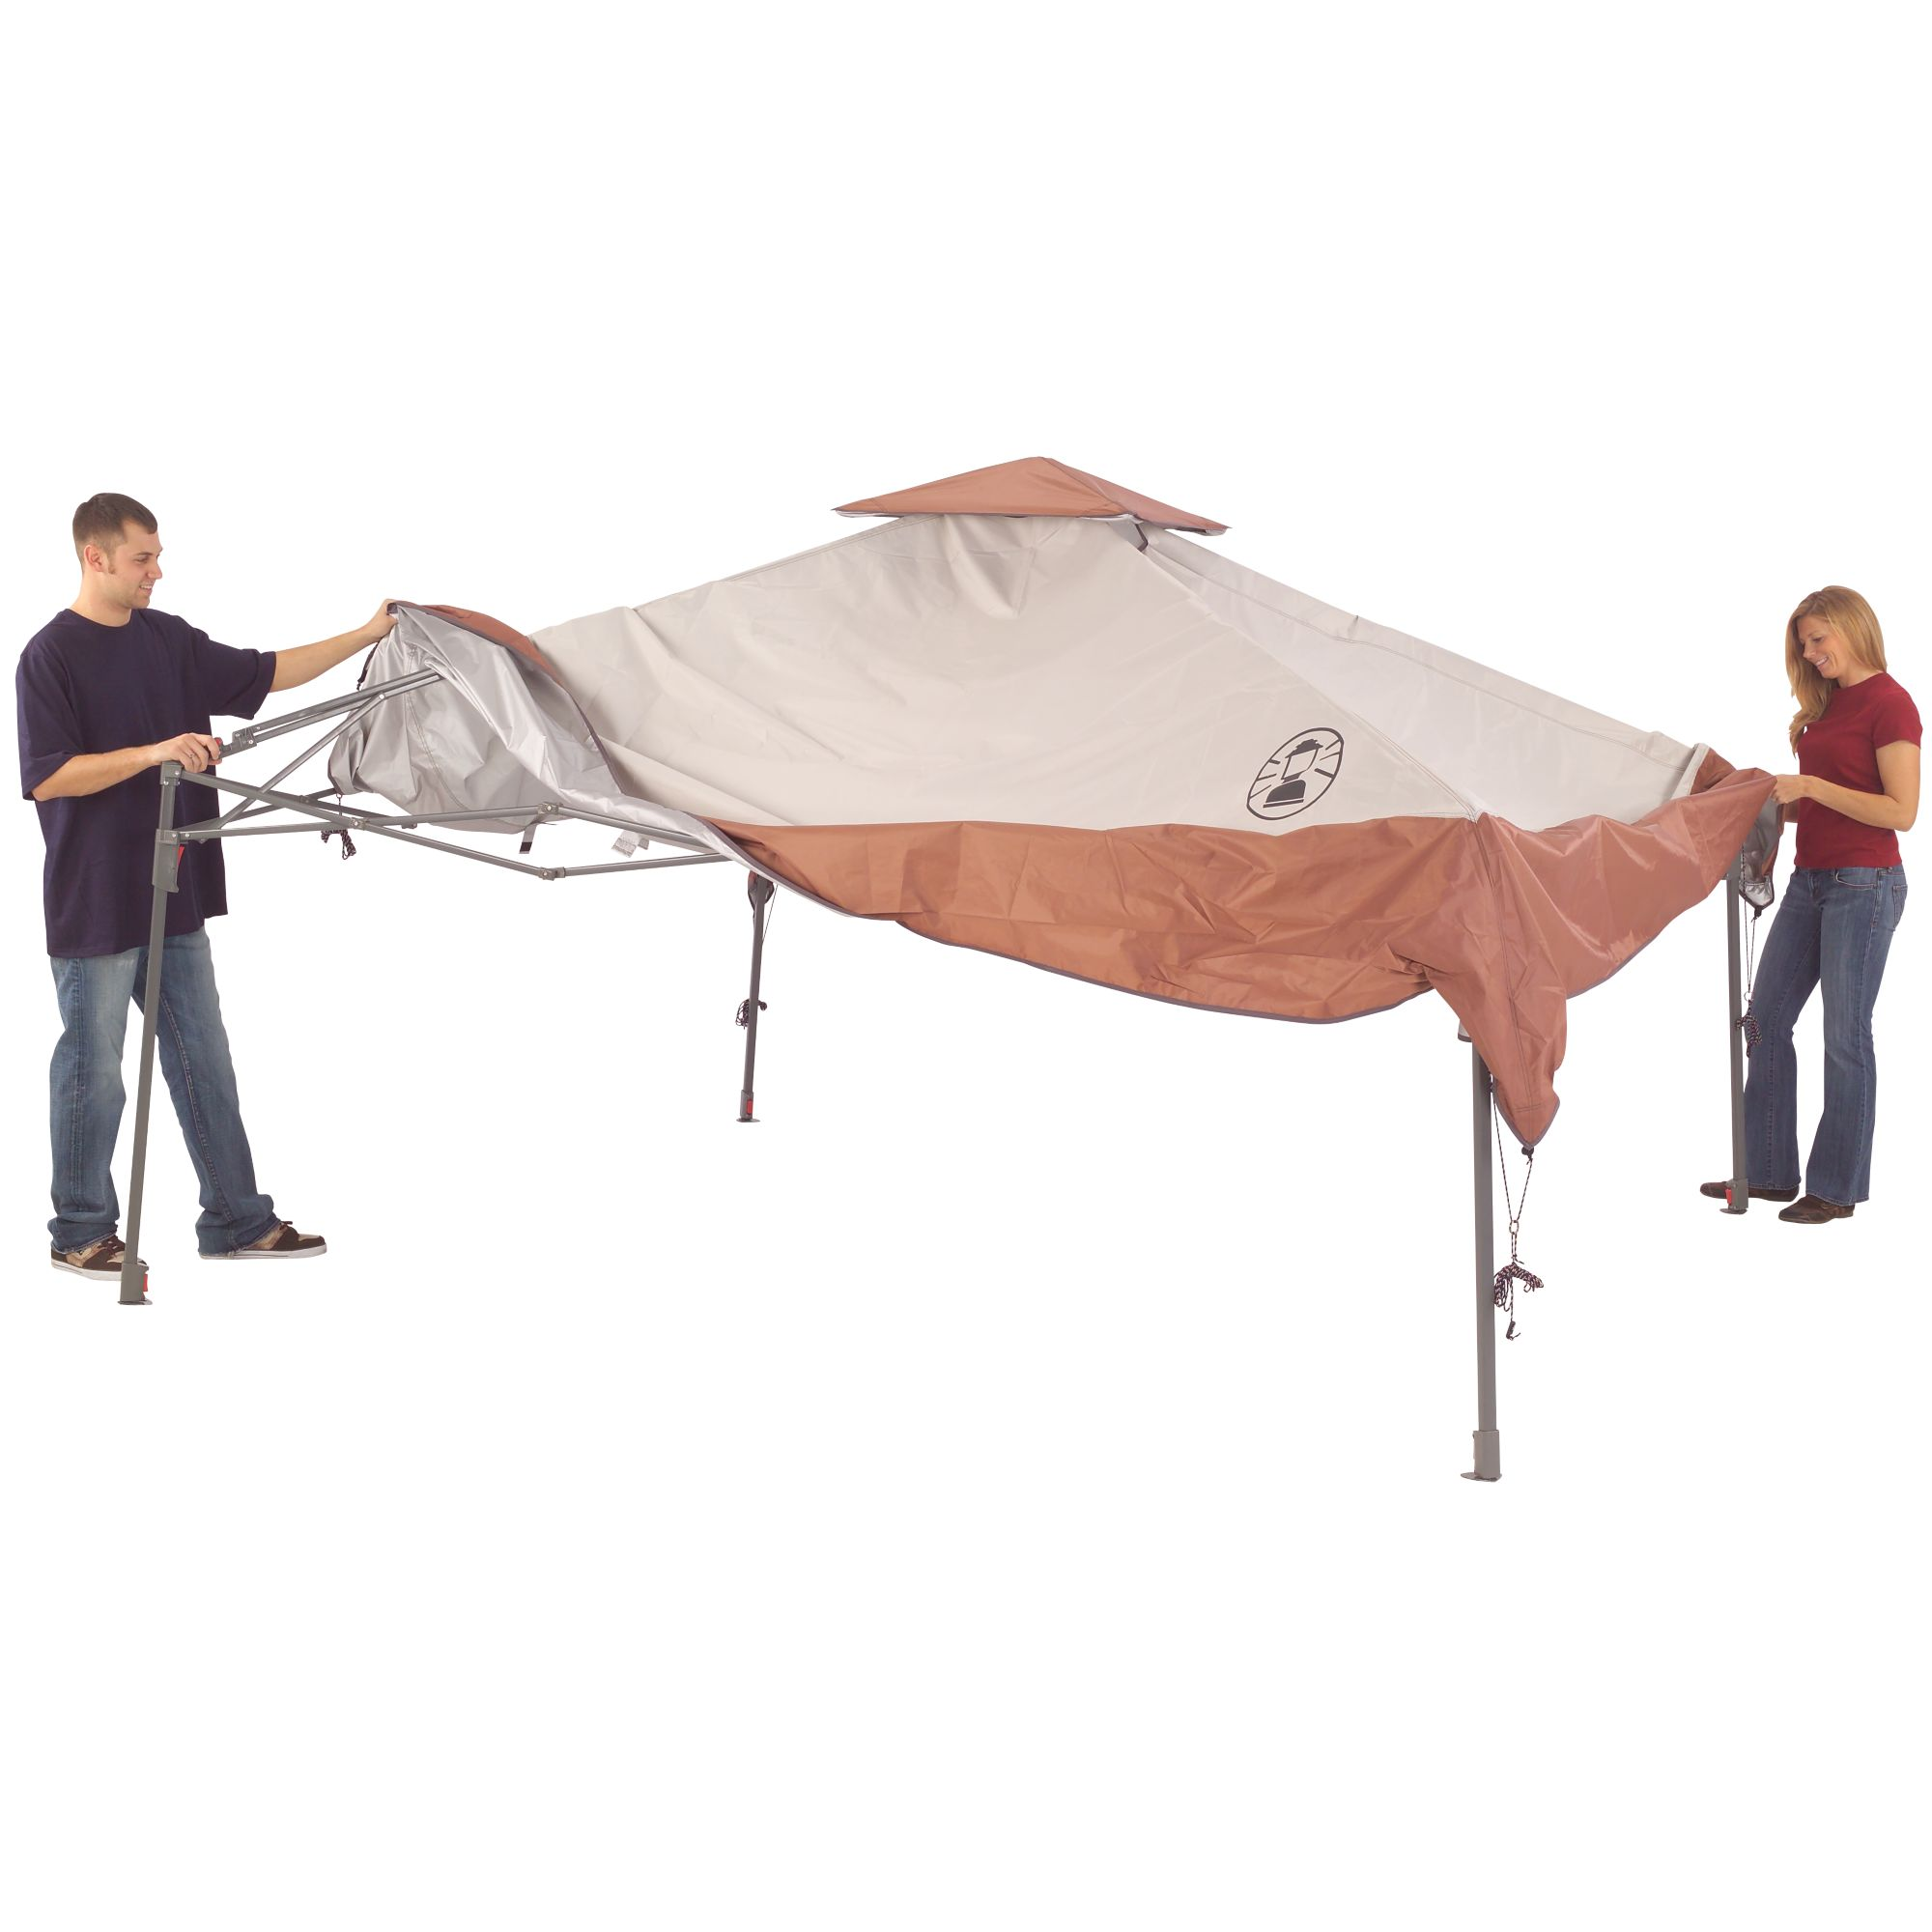 13 x 13 Instant Eaved Shelter | Coleman